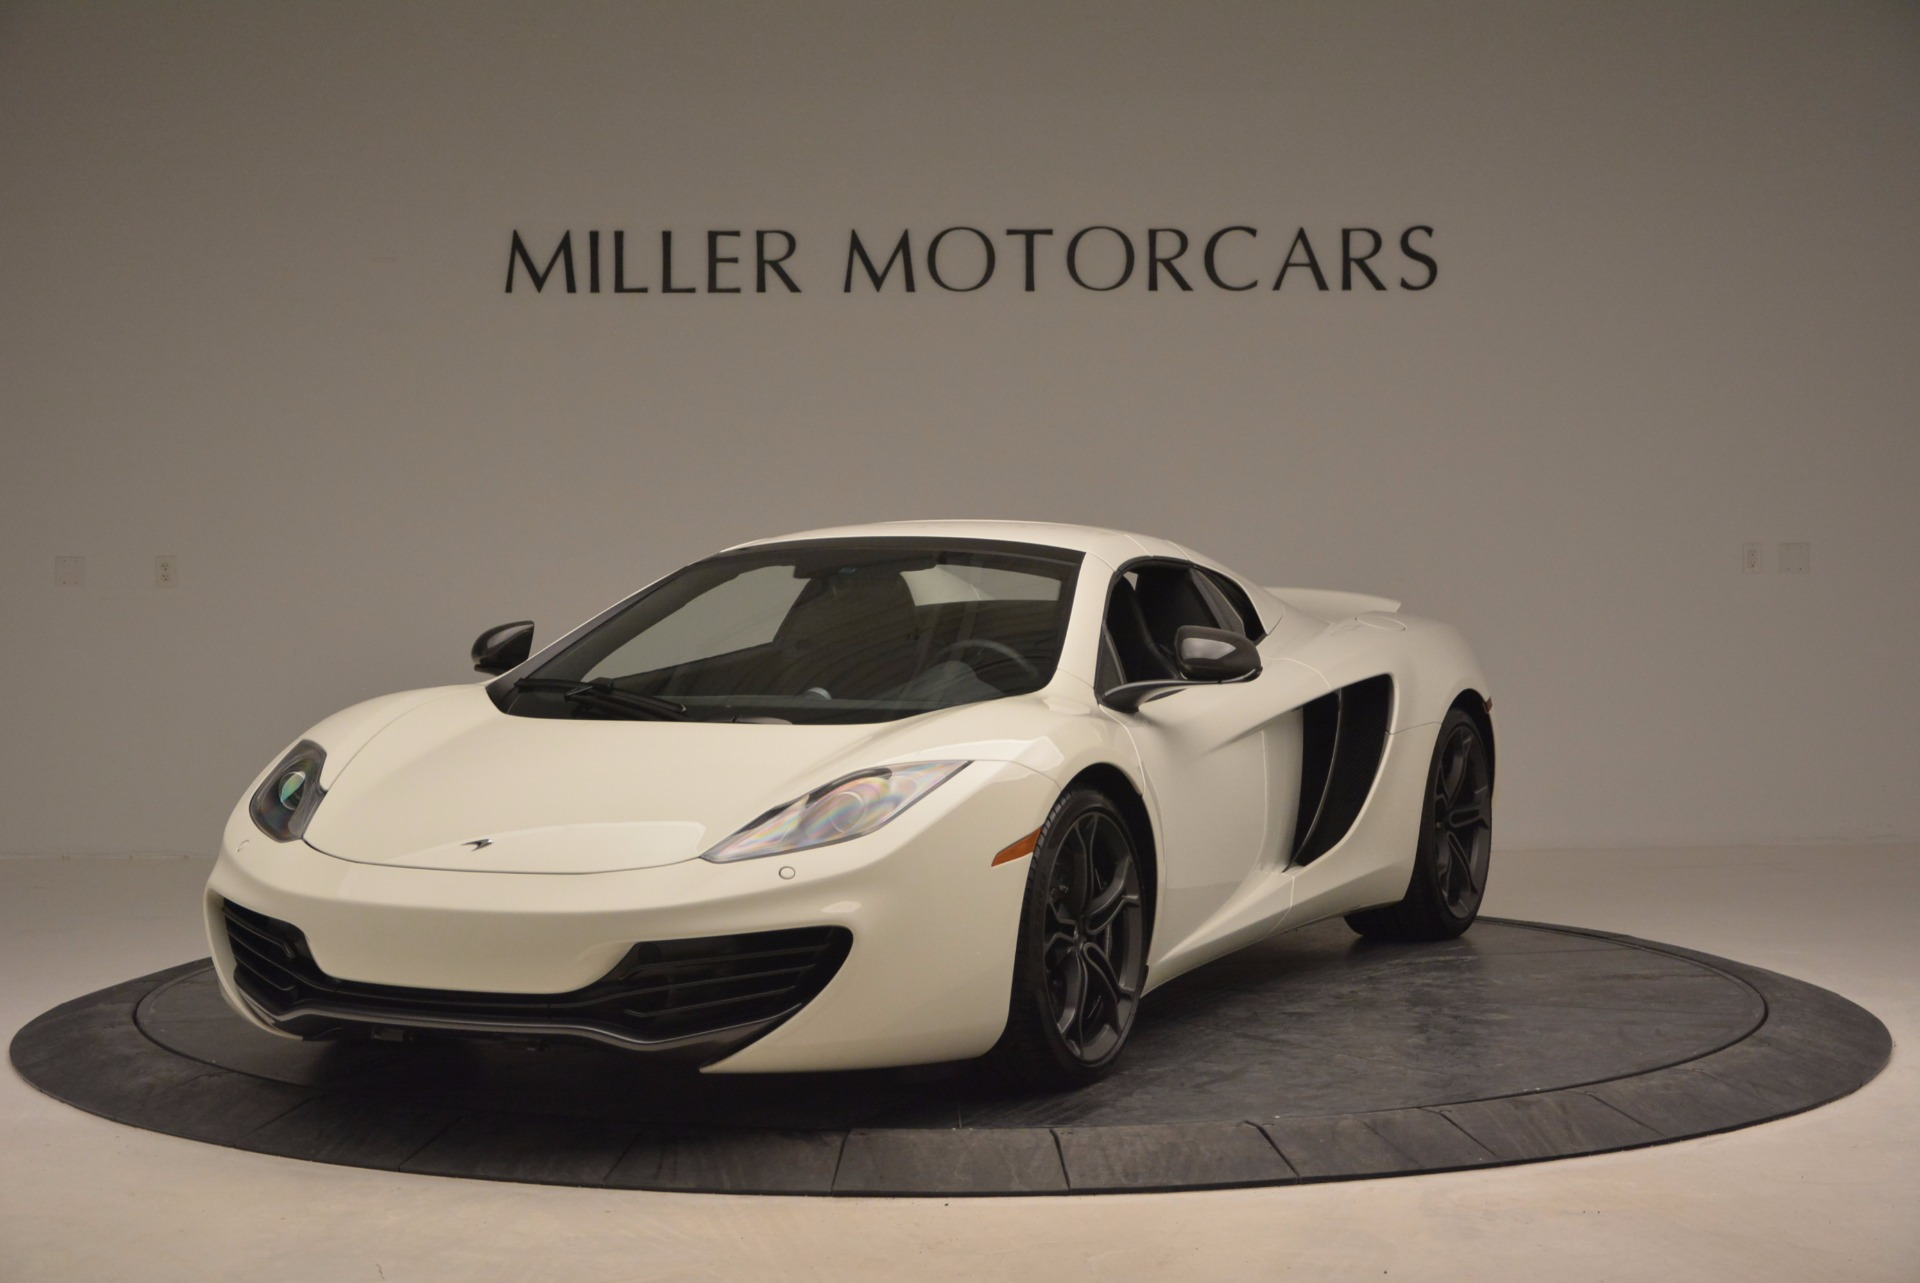 Used 2014 McLaren MP4-12C Spider For Sale In Greenwich, CT. Alfa Romeo of Greenwich, 3136 908_p14